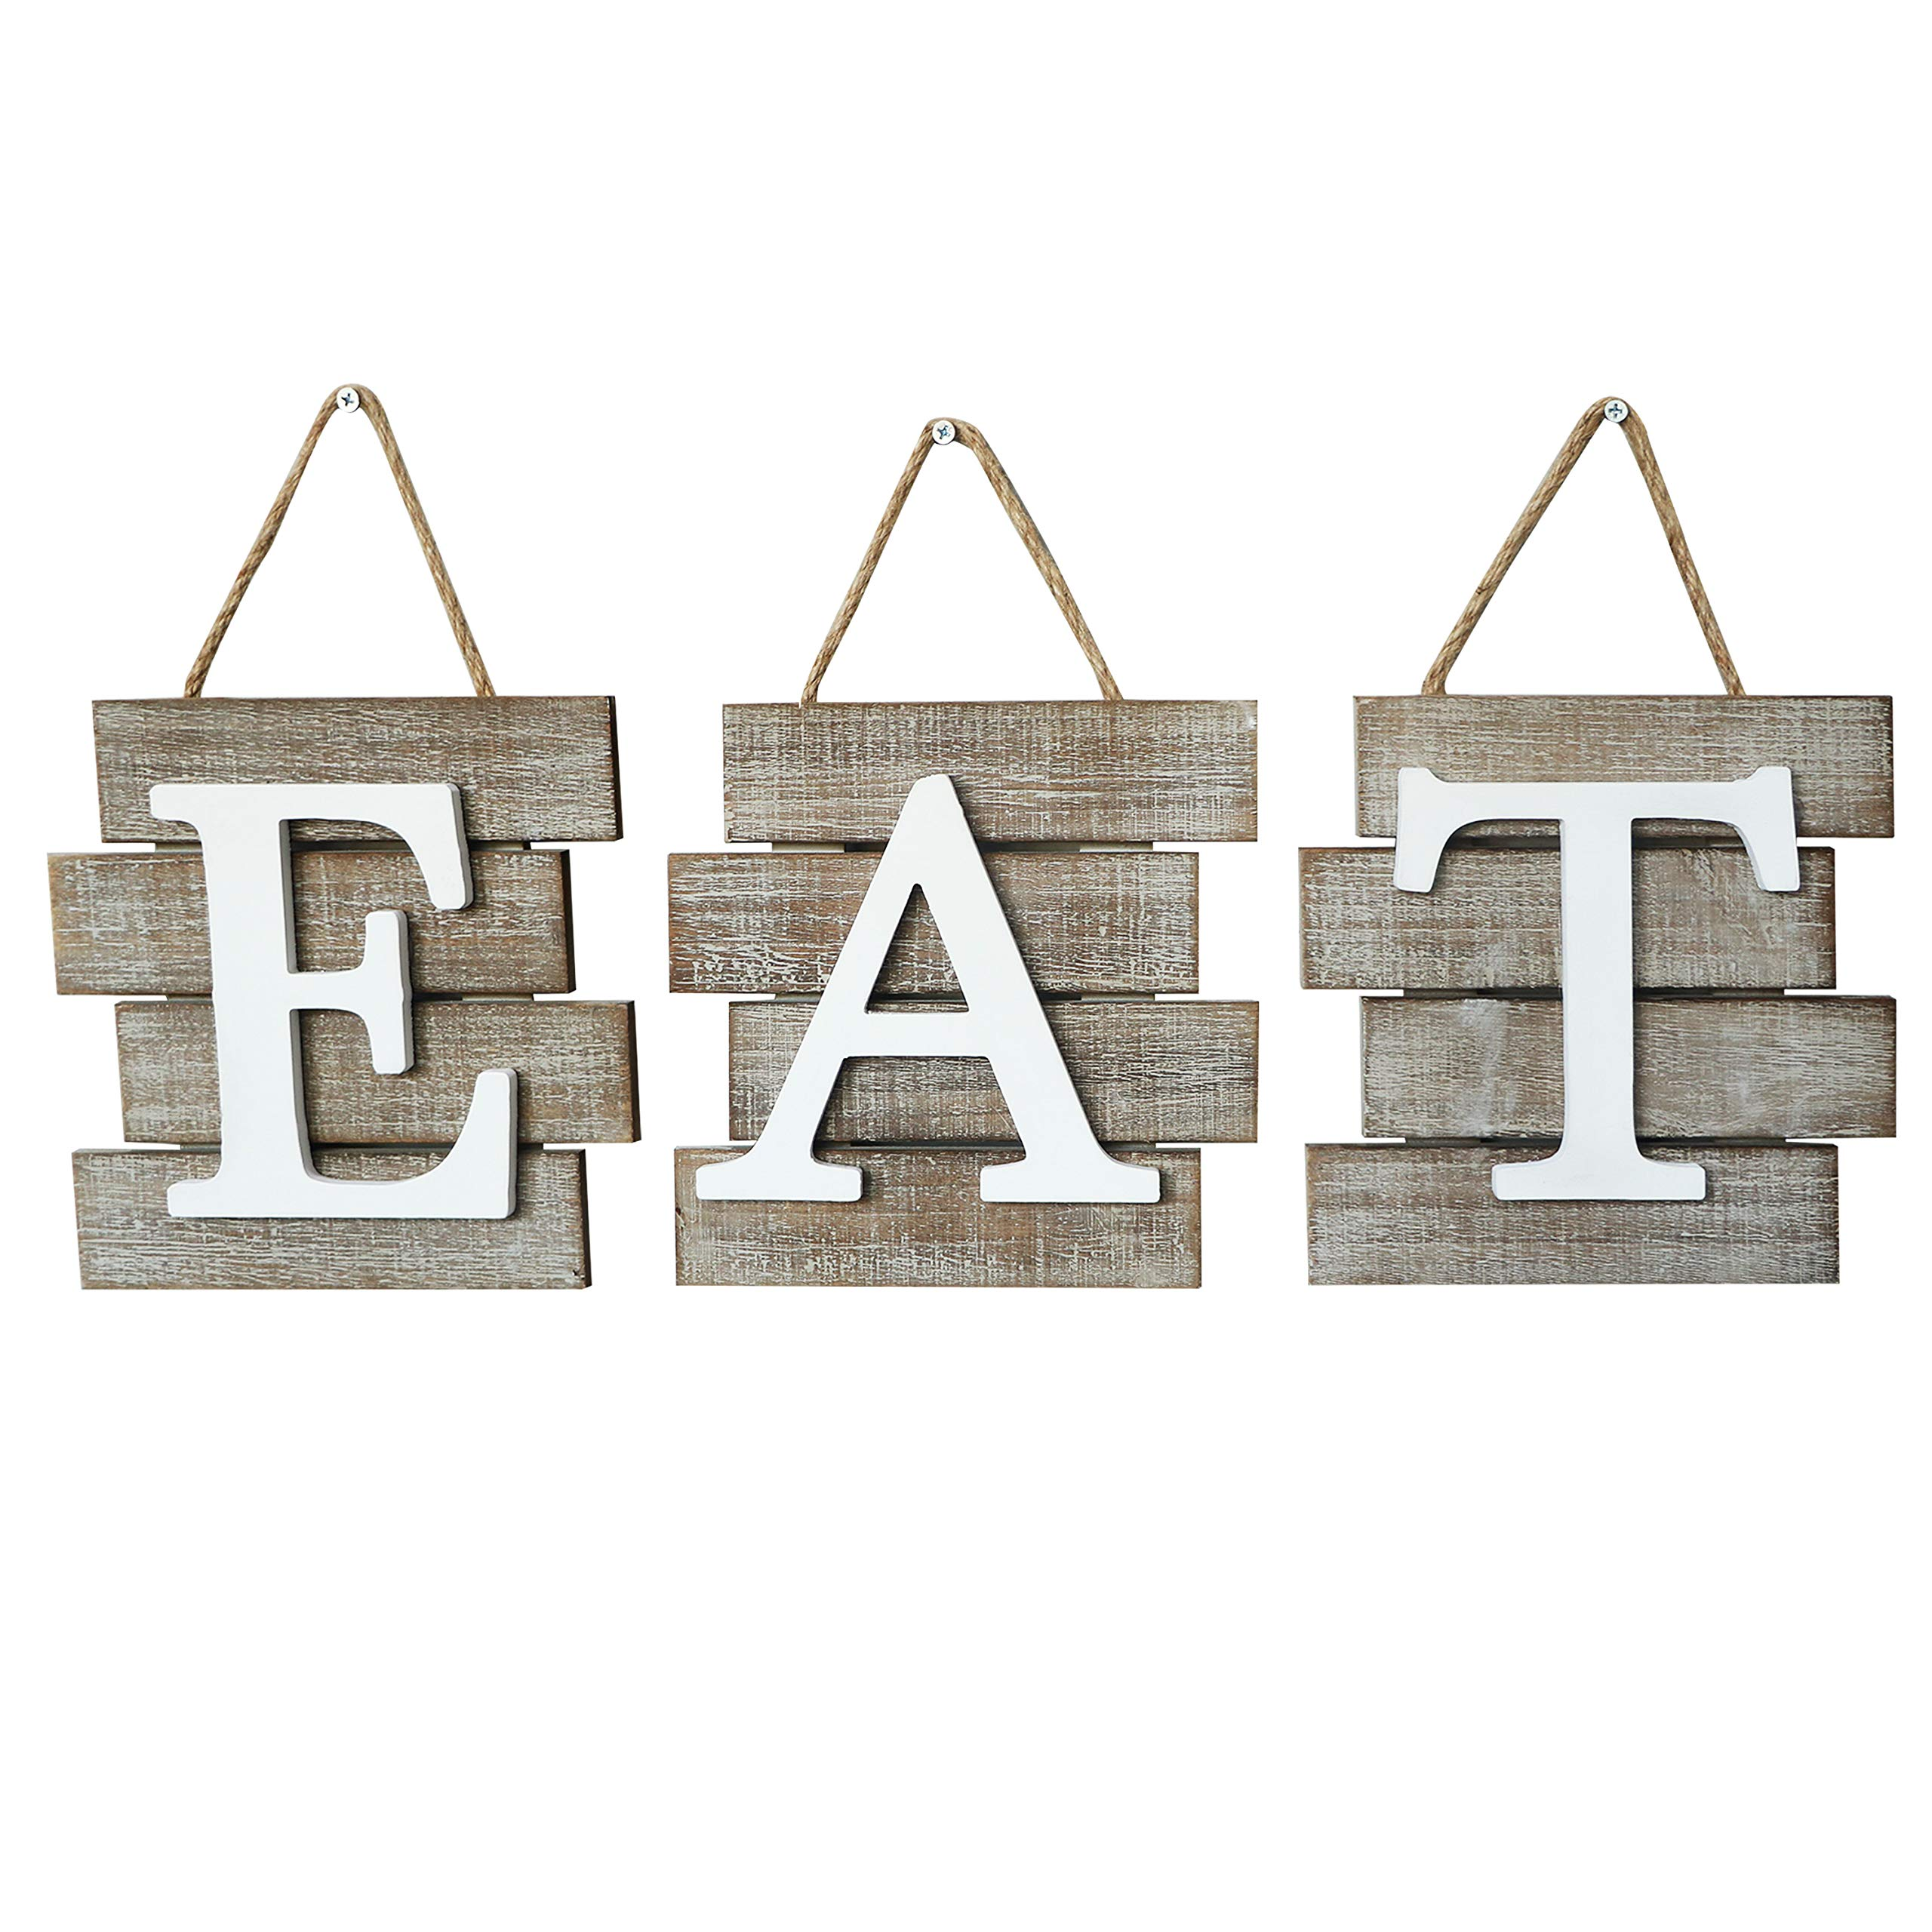 Barnyard Designs Eat Sign Wall Decor for Kitchen and Home, Distressed Natural, Rustic Farmhouse Country Decorative Wall Art 24'' x 8'' by Barnyard Designs